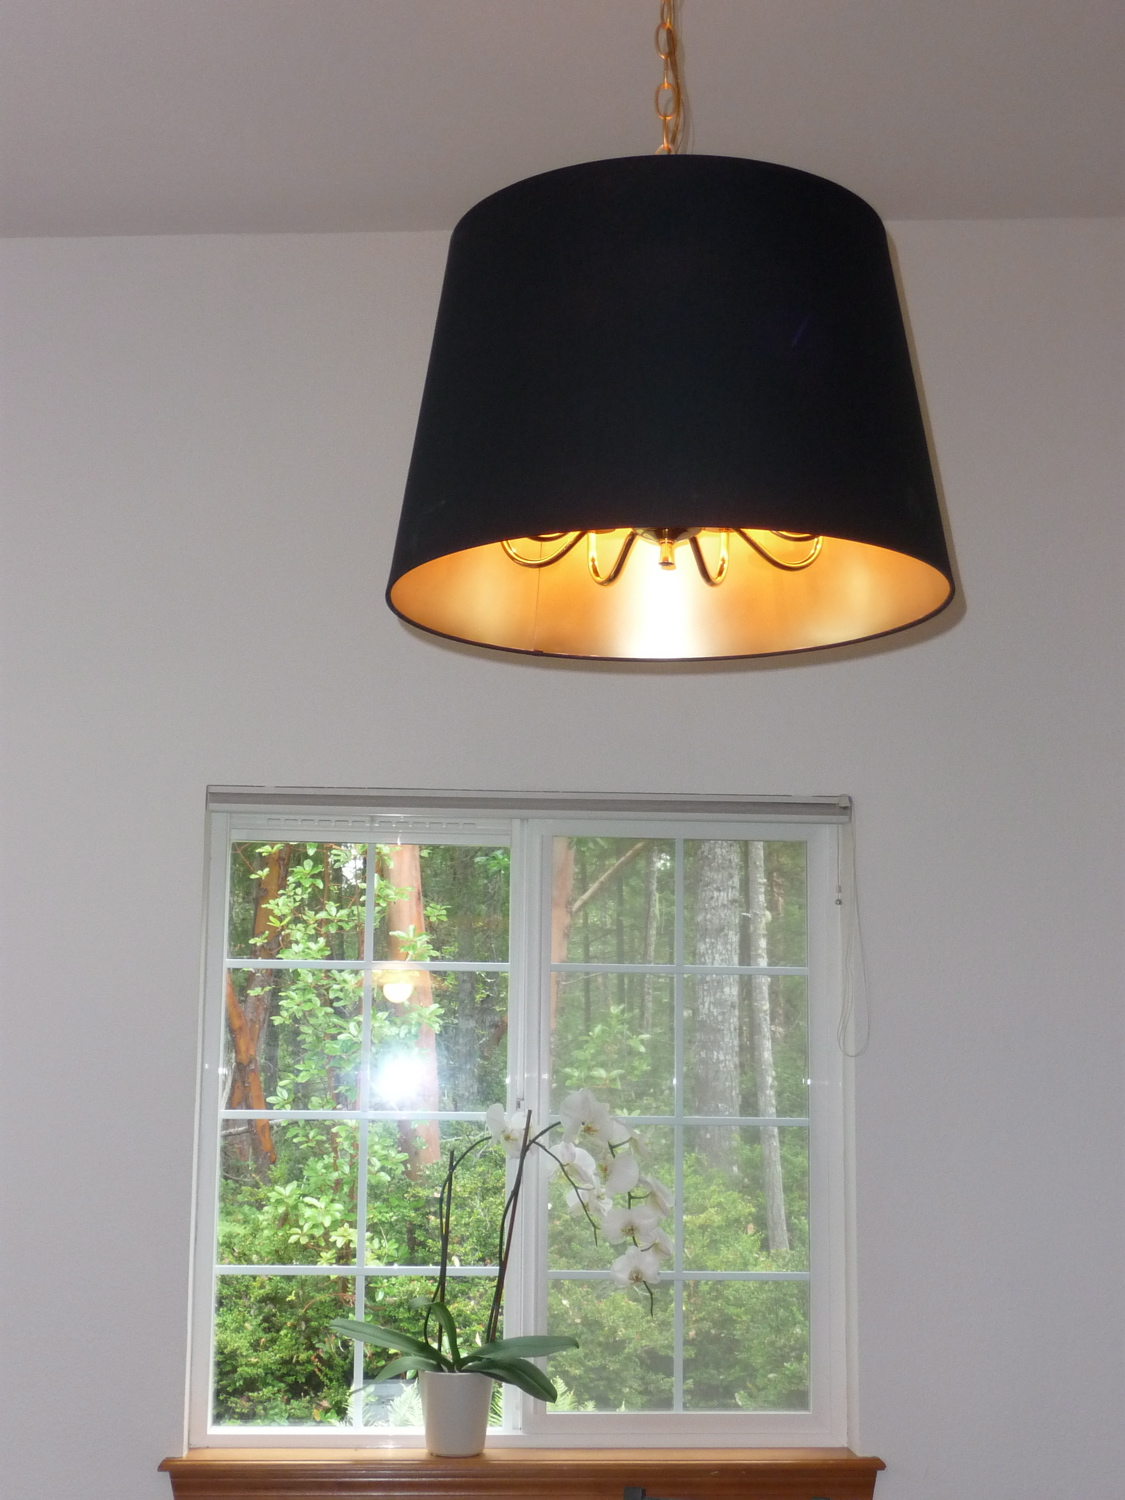 jara lamp shade over hanging ceiling light ikea hackers ikea